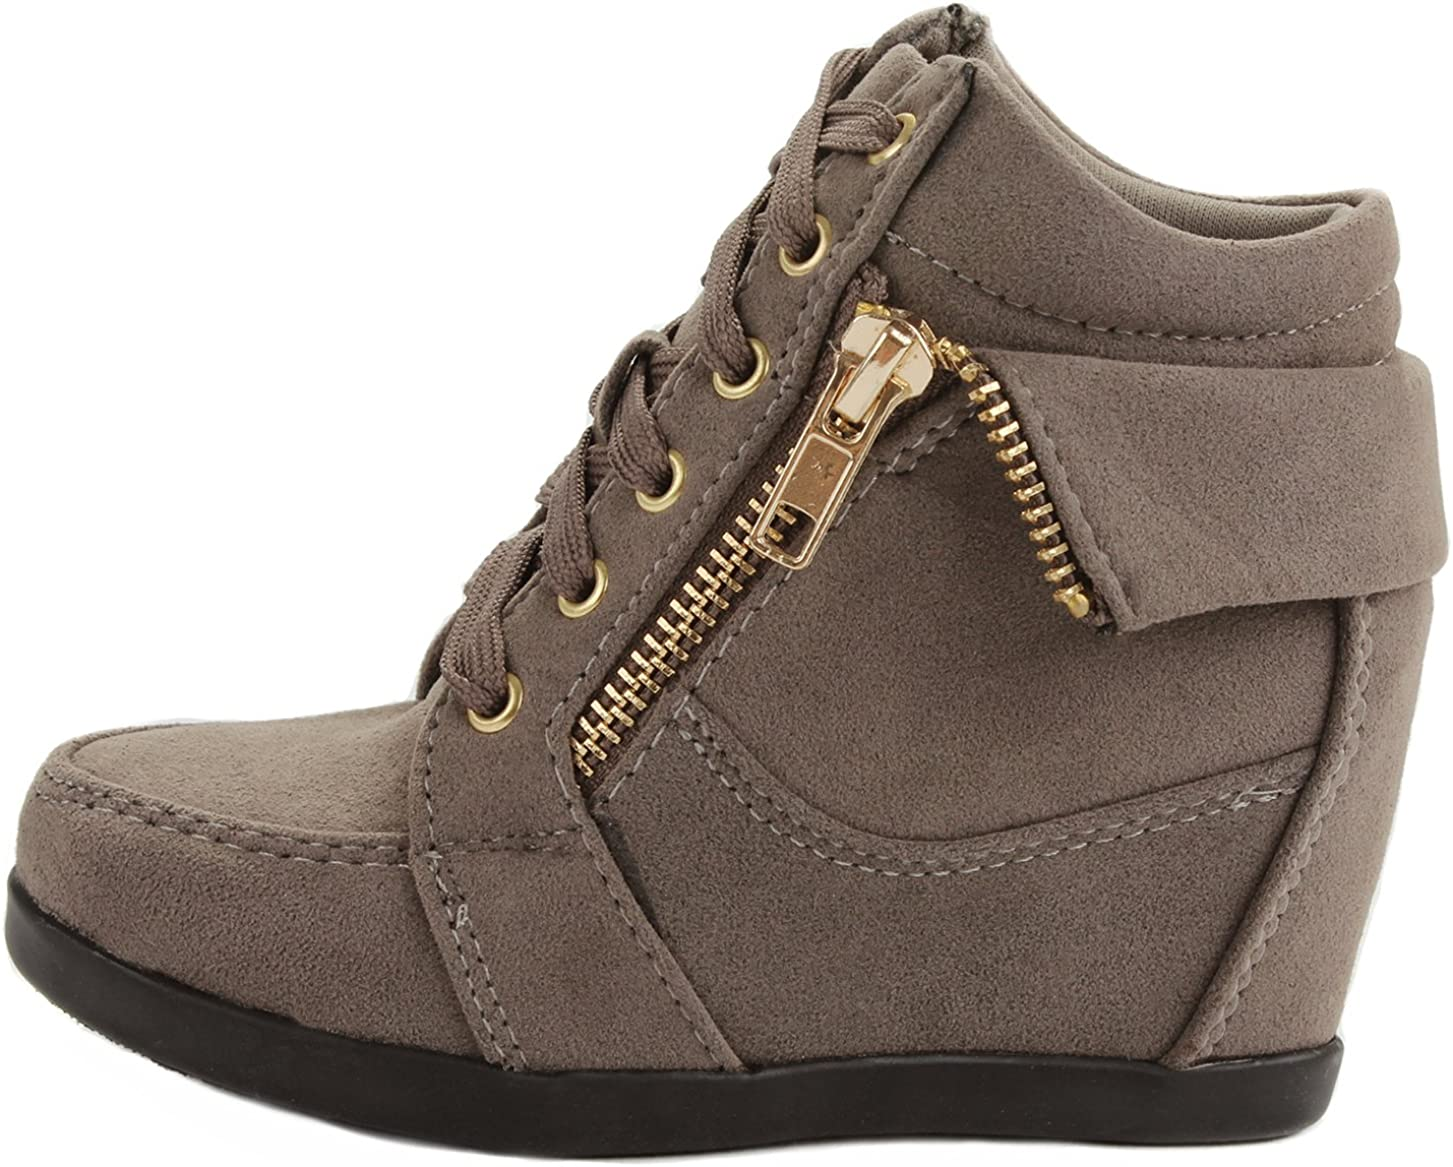 J.J.F Shoes Peter Gladys24 Kids Taupe Fashion Leatherette Suede Lace-up High Top Wedge Sneaker Bootie-9